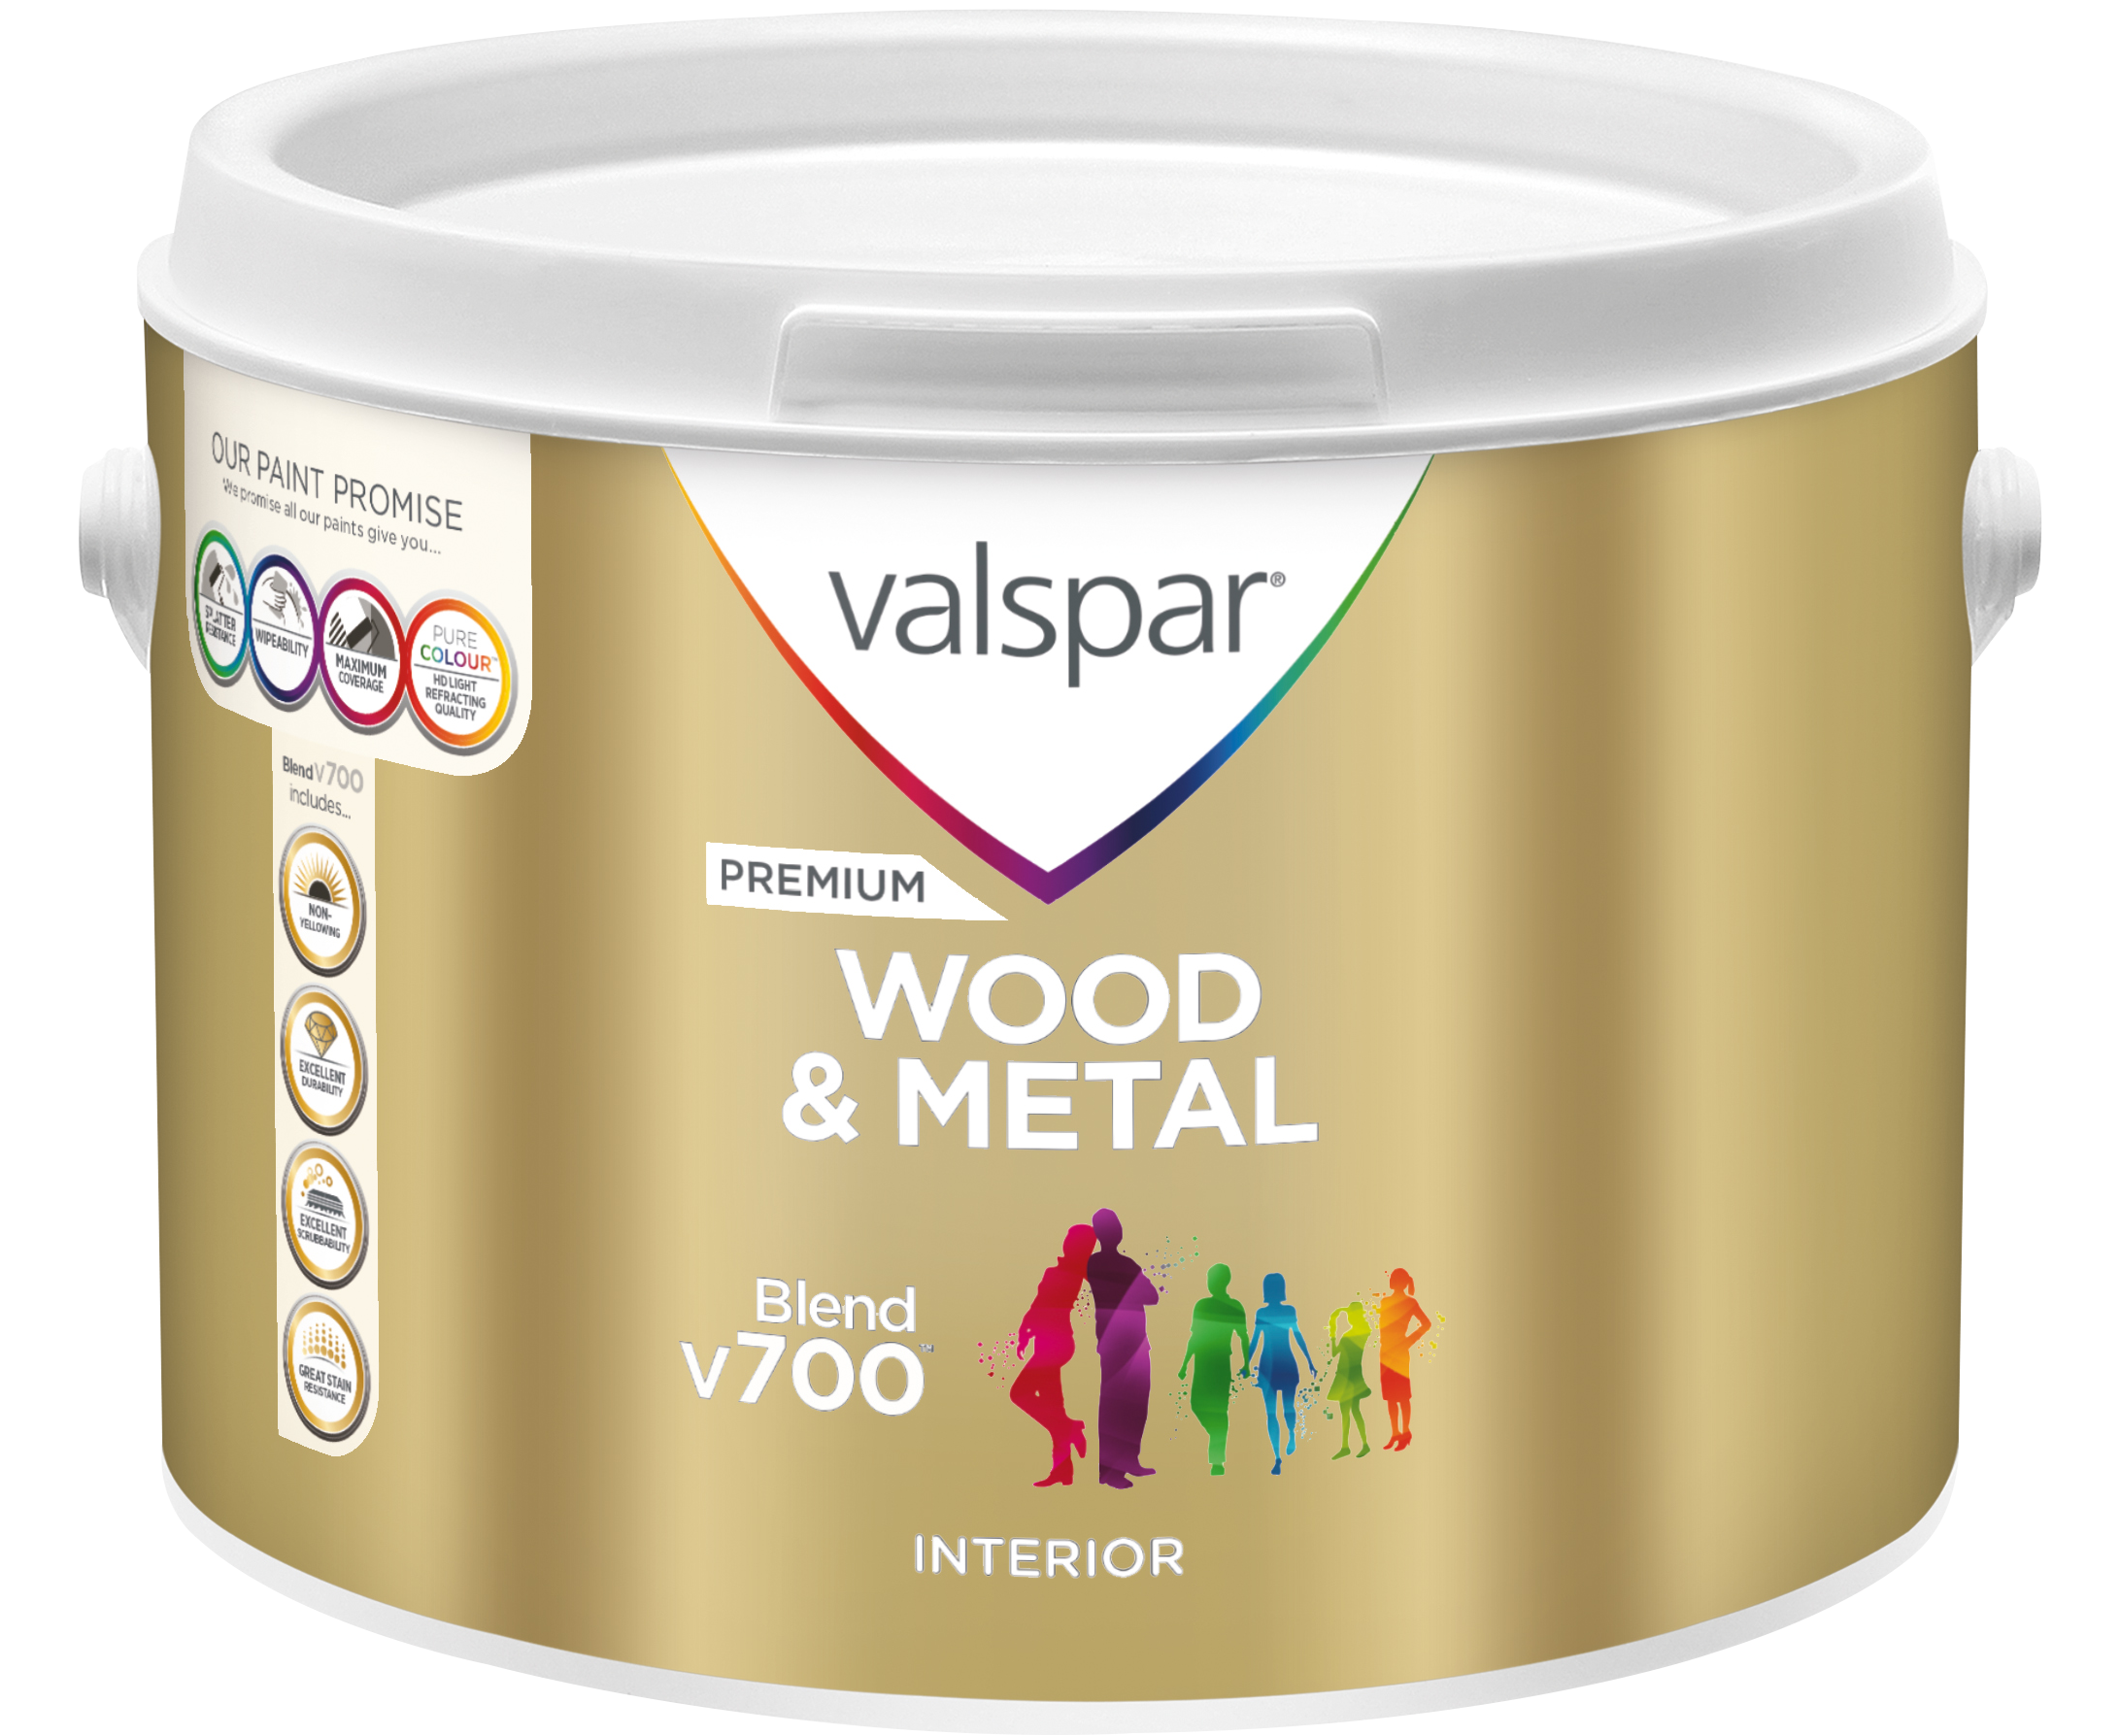 Premium Blend V700 Wood Metal Paint | Valspar Paint UK